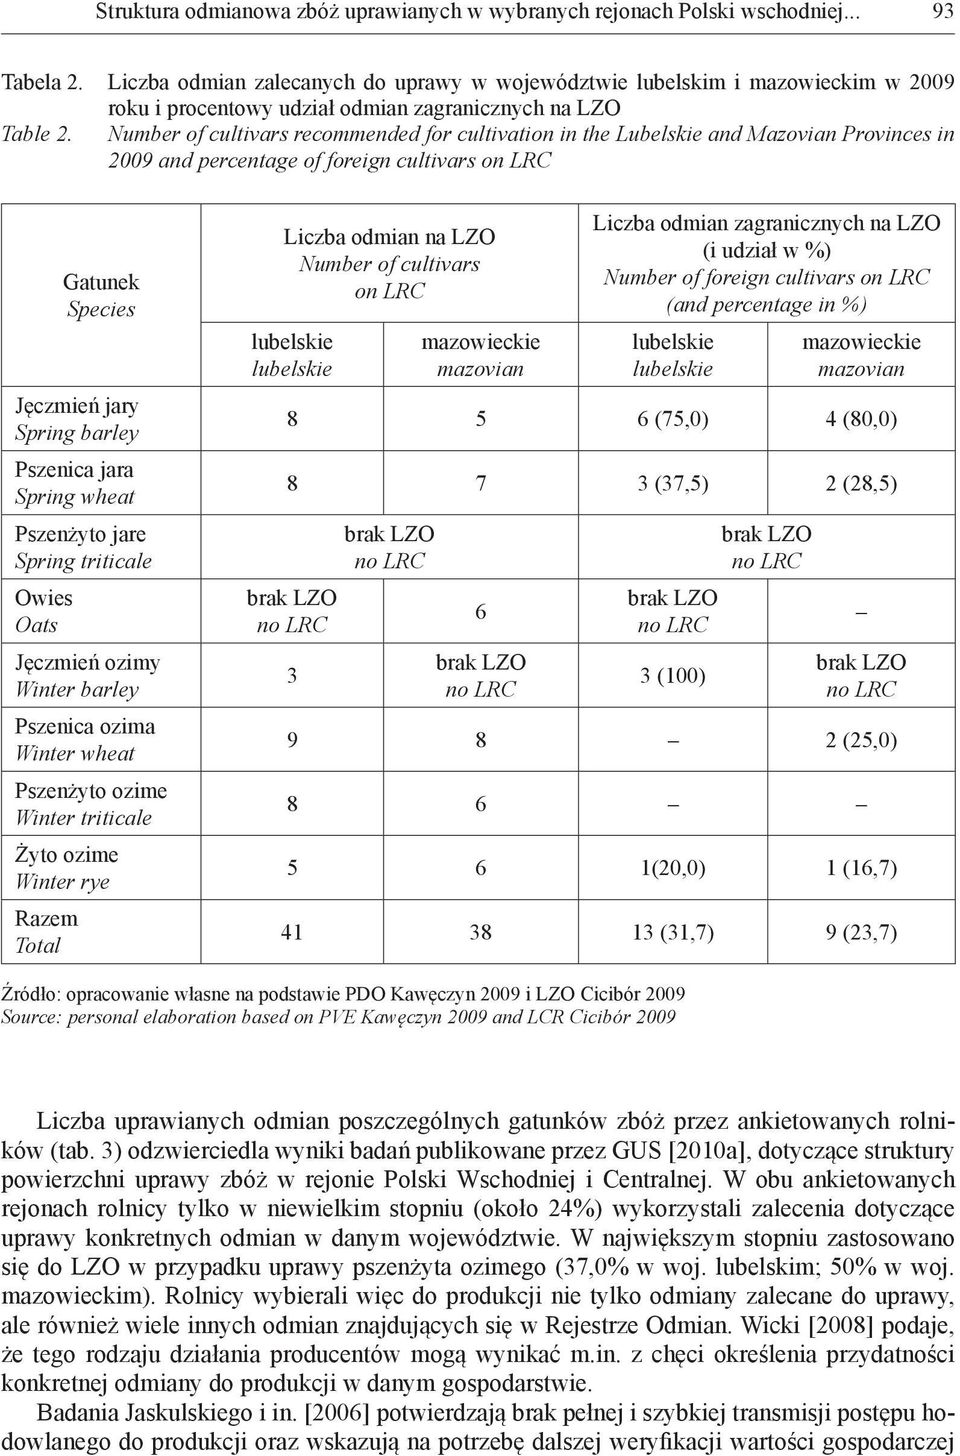 Number of cultivars recommended for cultivation in the Lubelskie and Mazovian Provinces in 2009 and percentage of foreign cultivars on LRC Gatunek Species Jęczmień jary Spring barley Pszenica jara